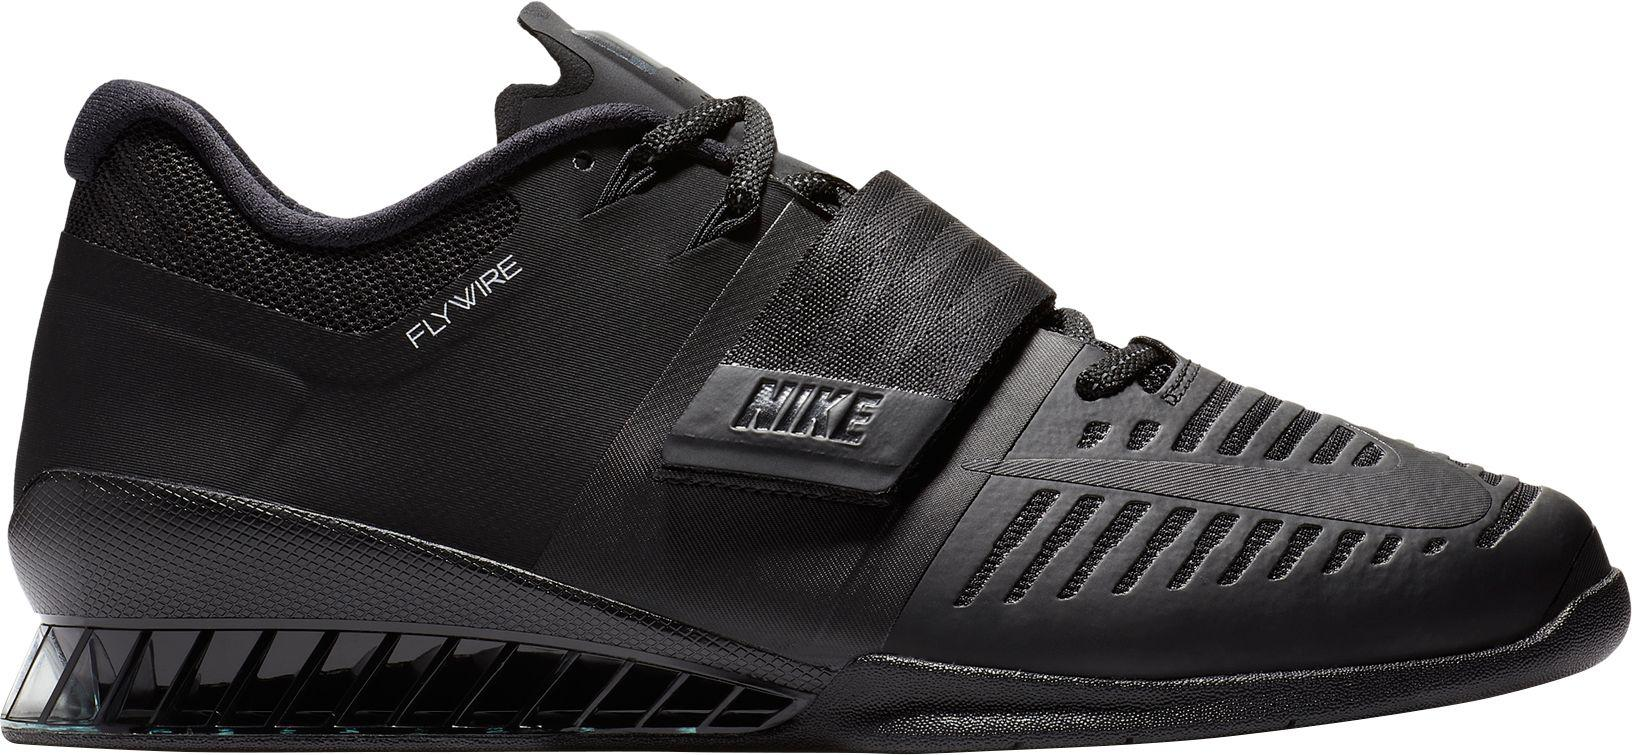 Nike Men S Weightlifting Shoes